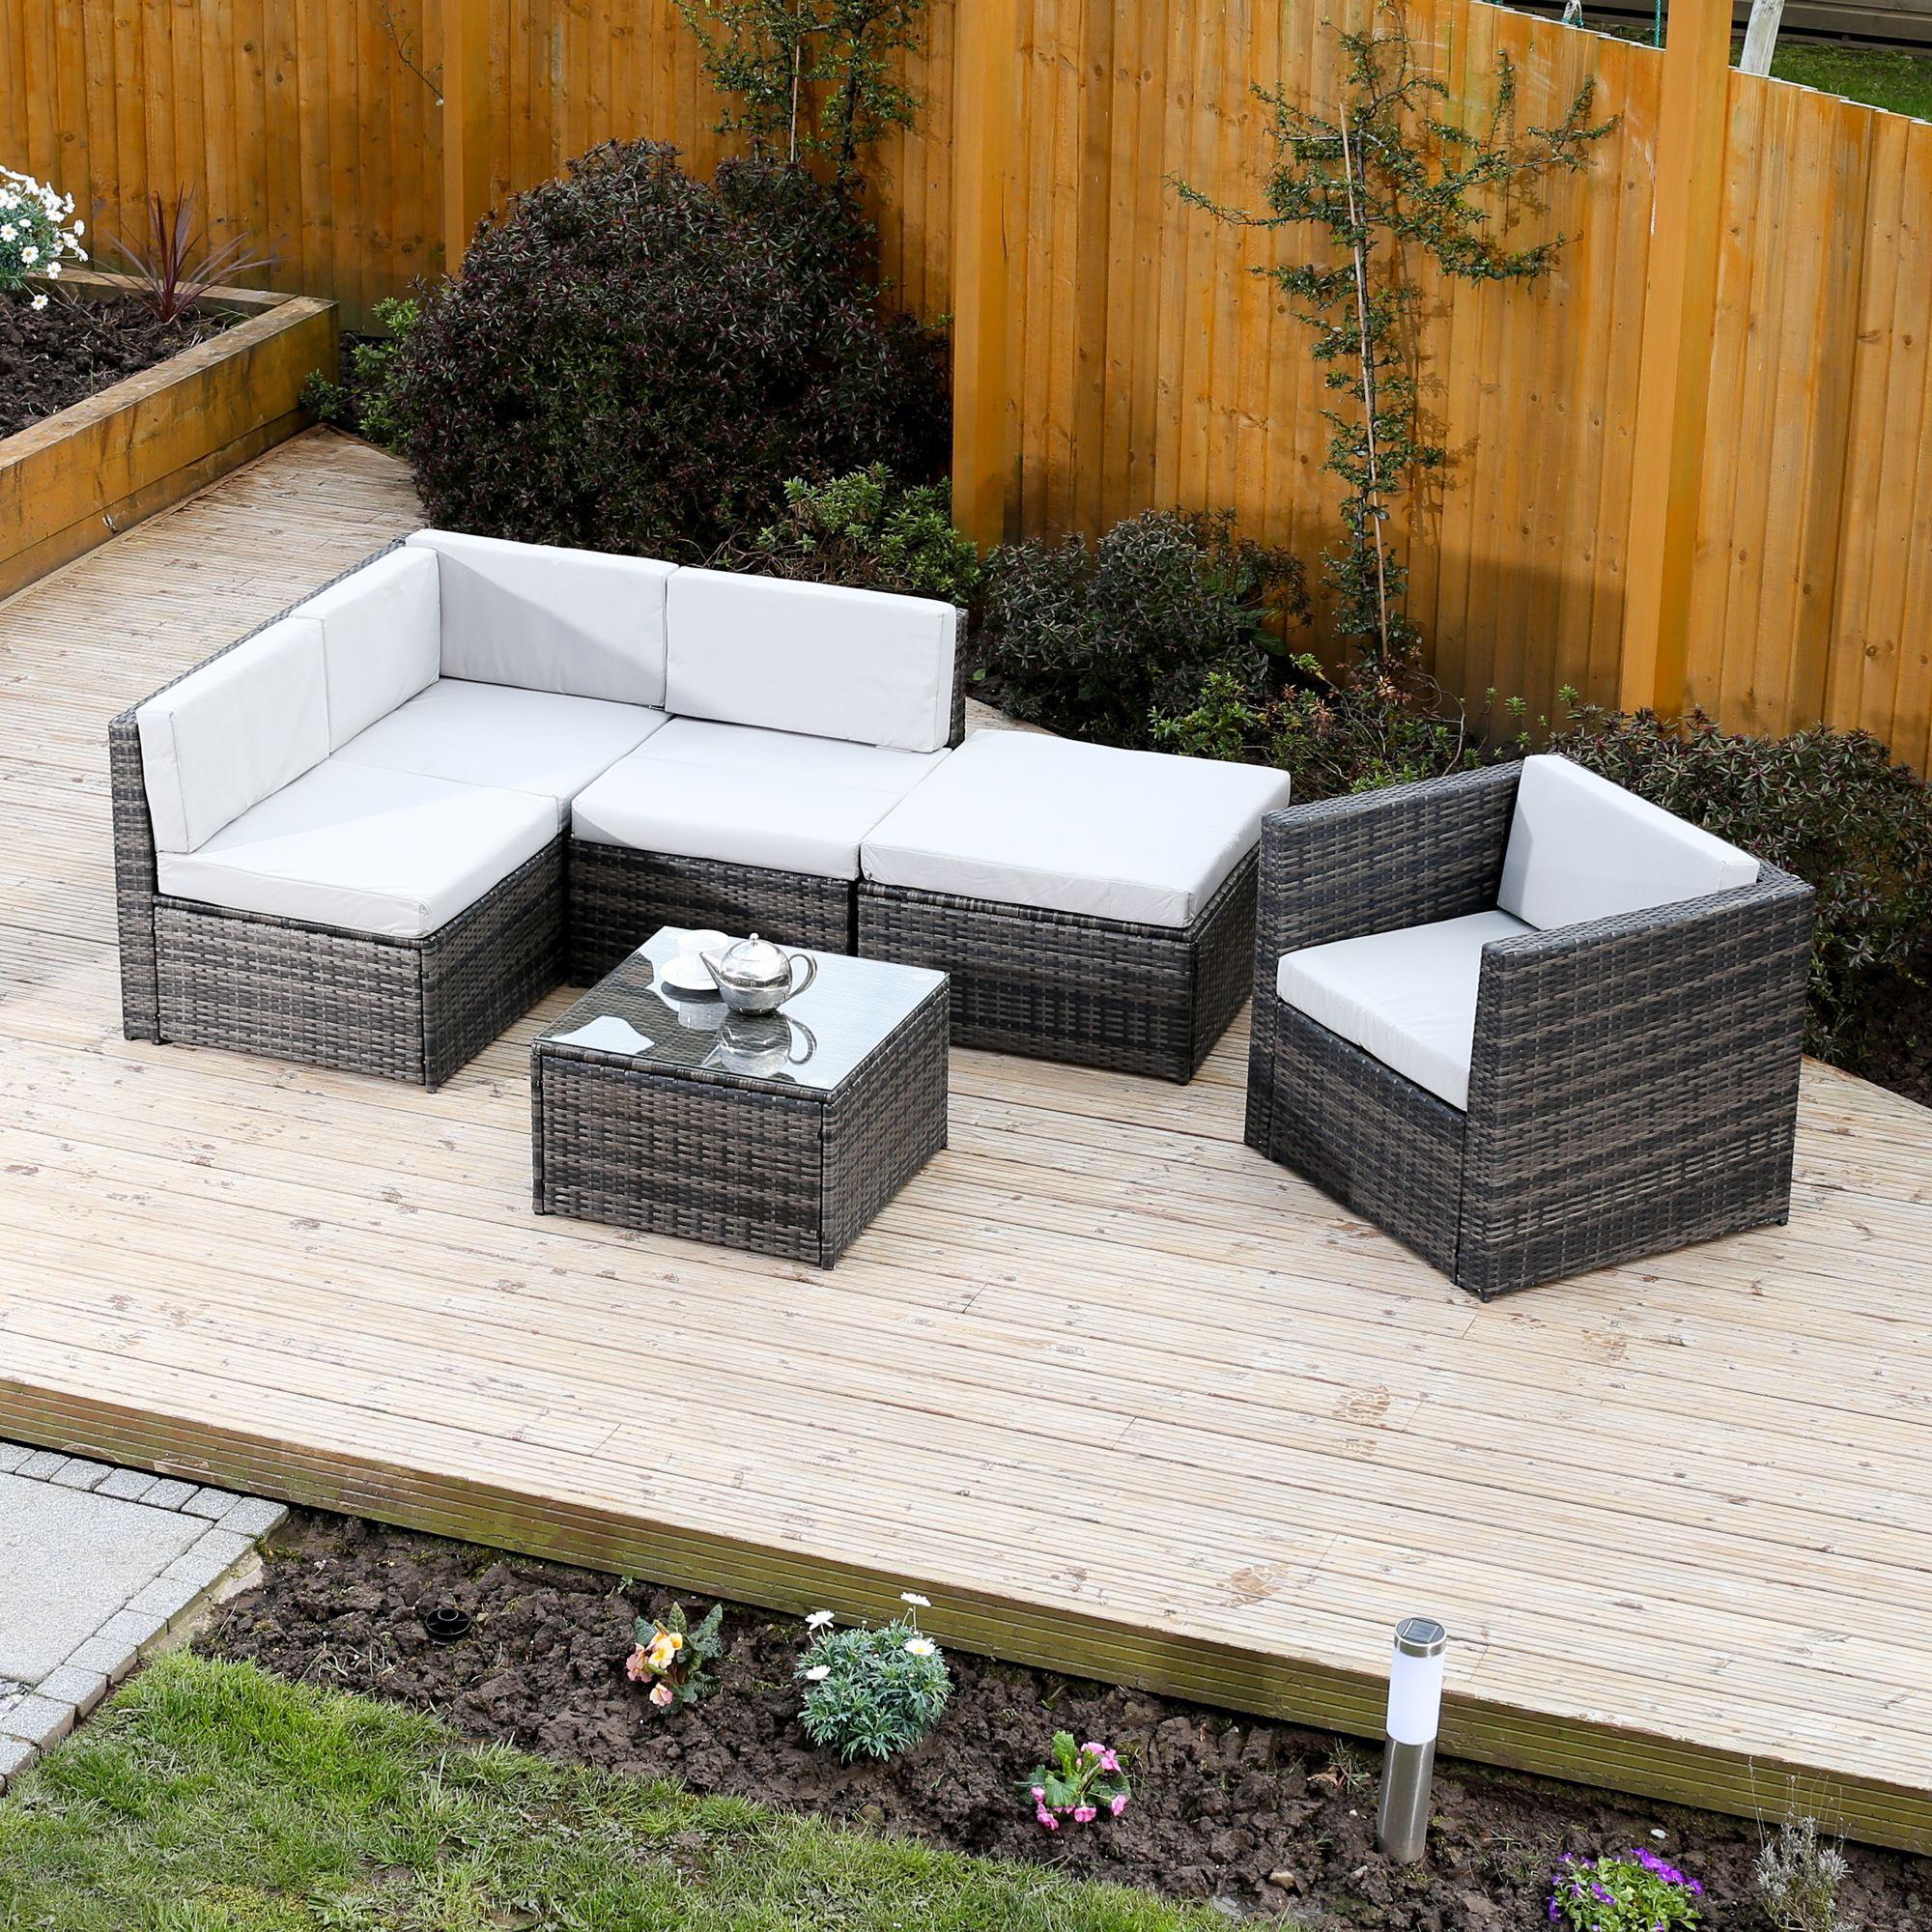 Rattan Garden Sofas Uk Urban Home Interior